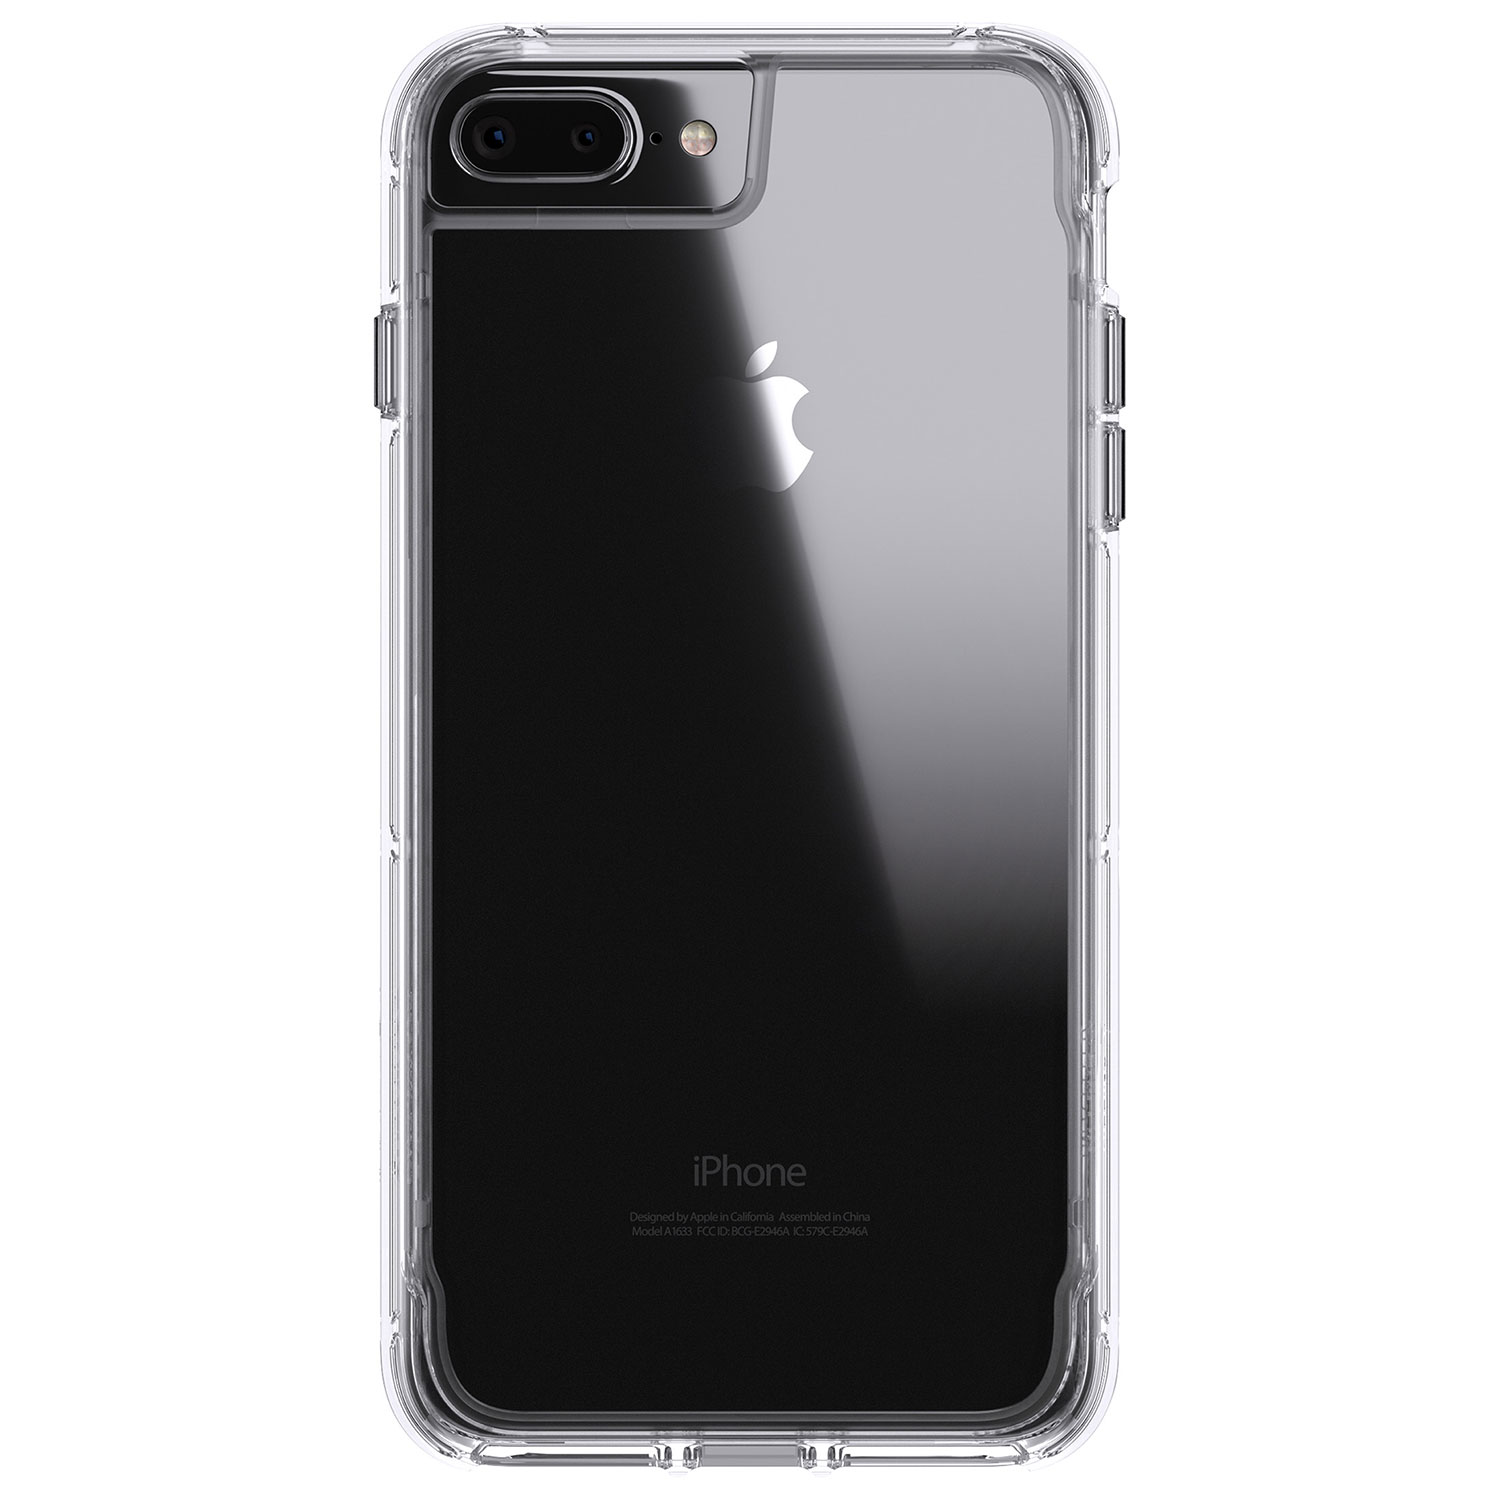 iphone 6, 7, \u0026 8 plus cases best buy canadagriffin survivor clear fitted hard shell case for iphone 8 plus 7 plus 6 plus 6s plus clear